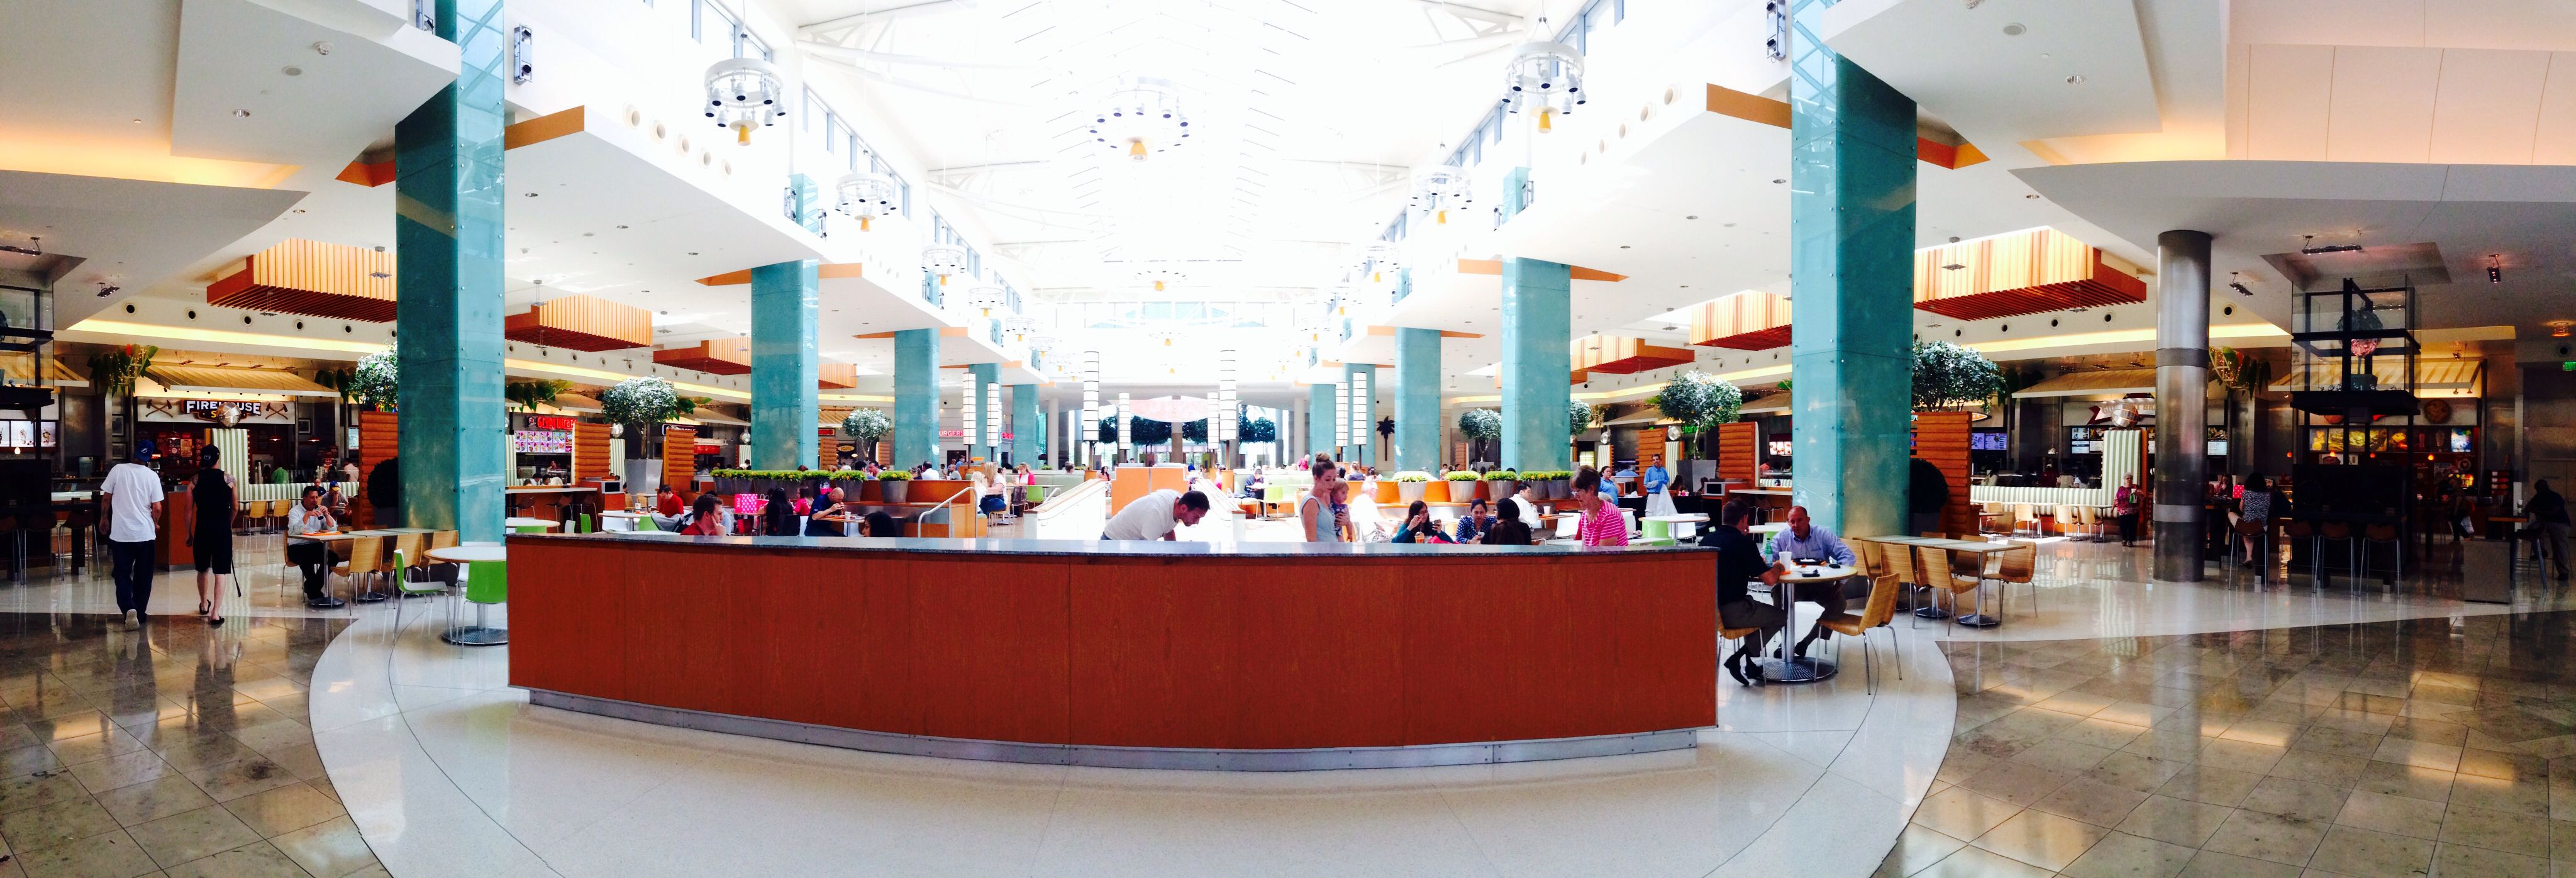 Mall at Millenia food court. Over 20 different vendors including ...